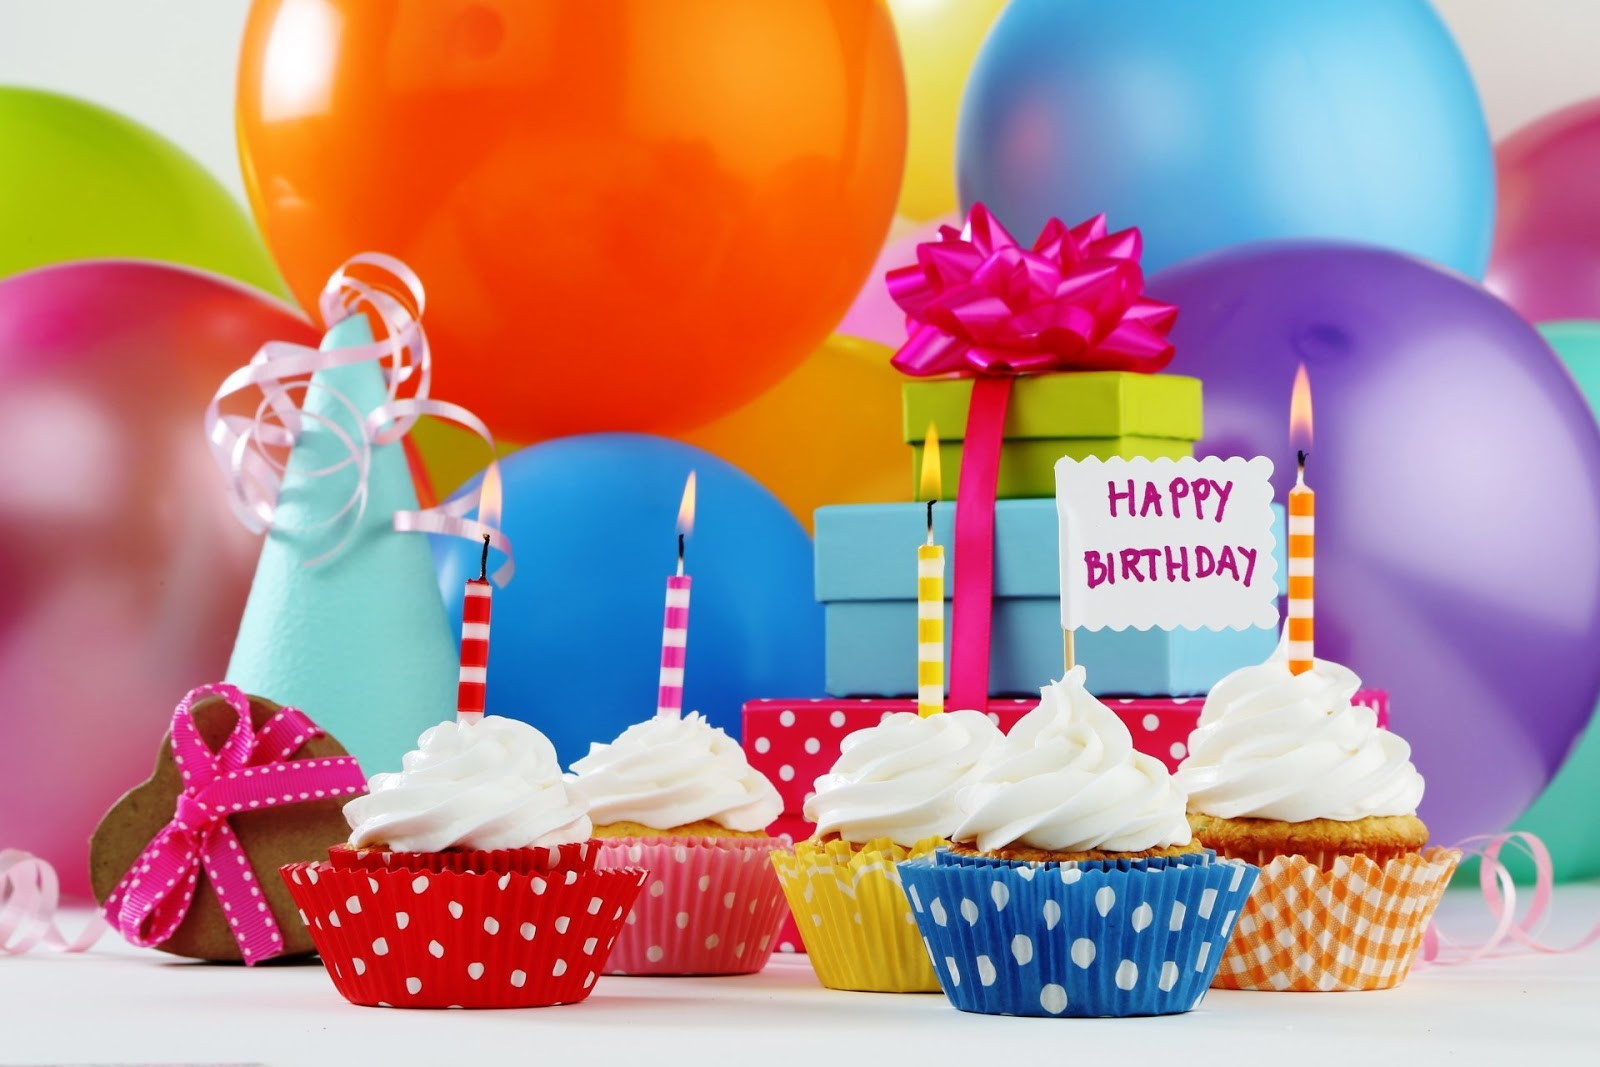 Happy Birthday Wishes To A Coworker  Happy Birthday Wishes Quotes for Coworker Colleague